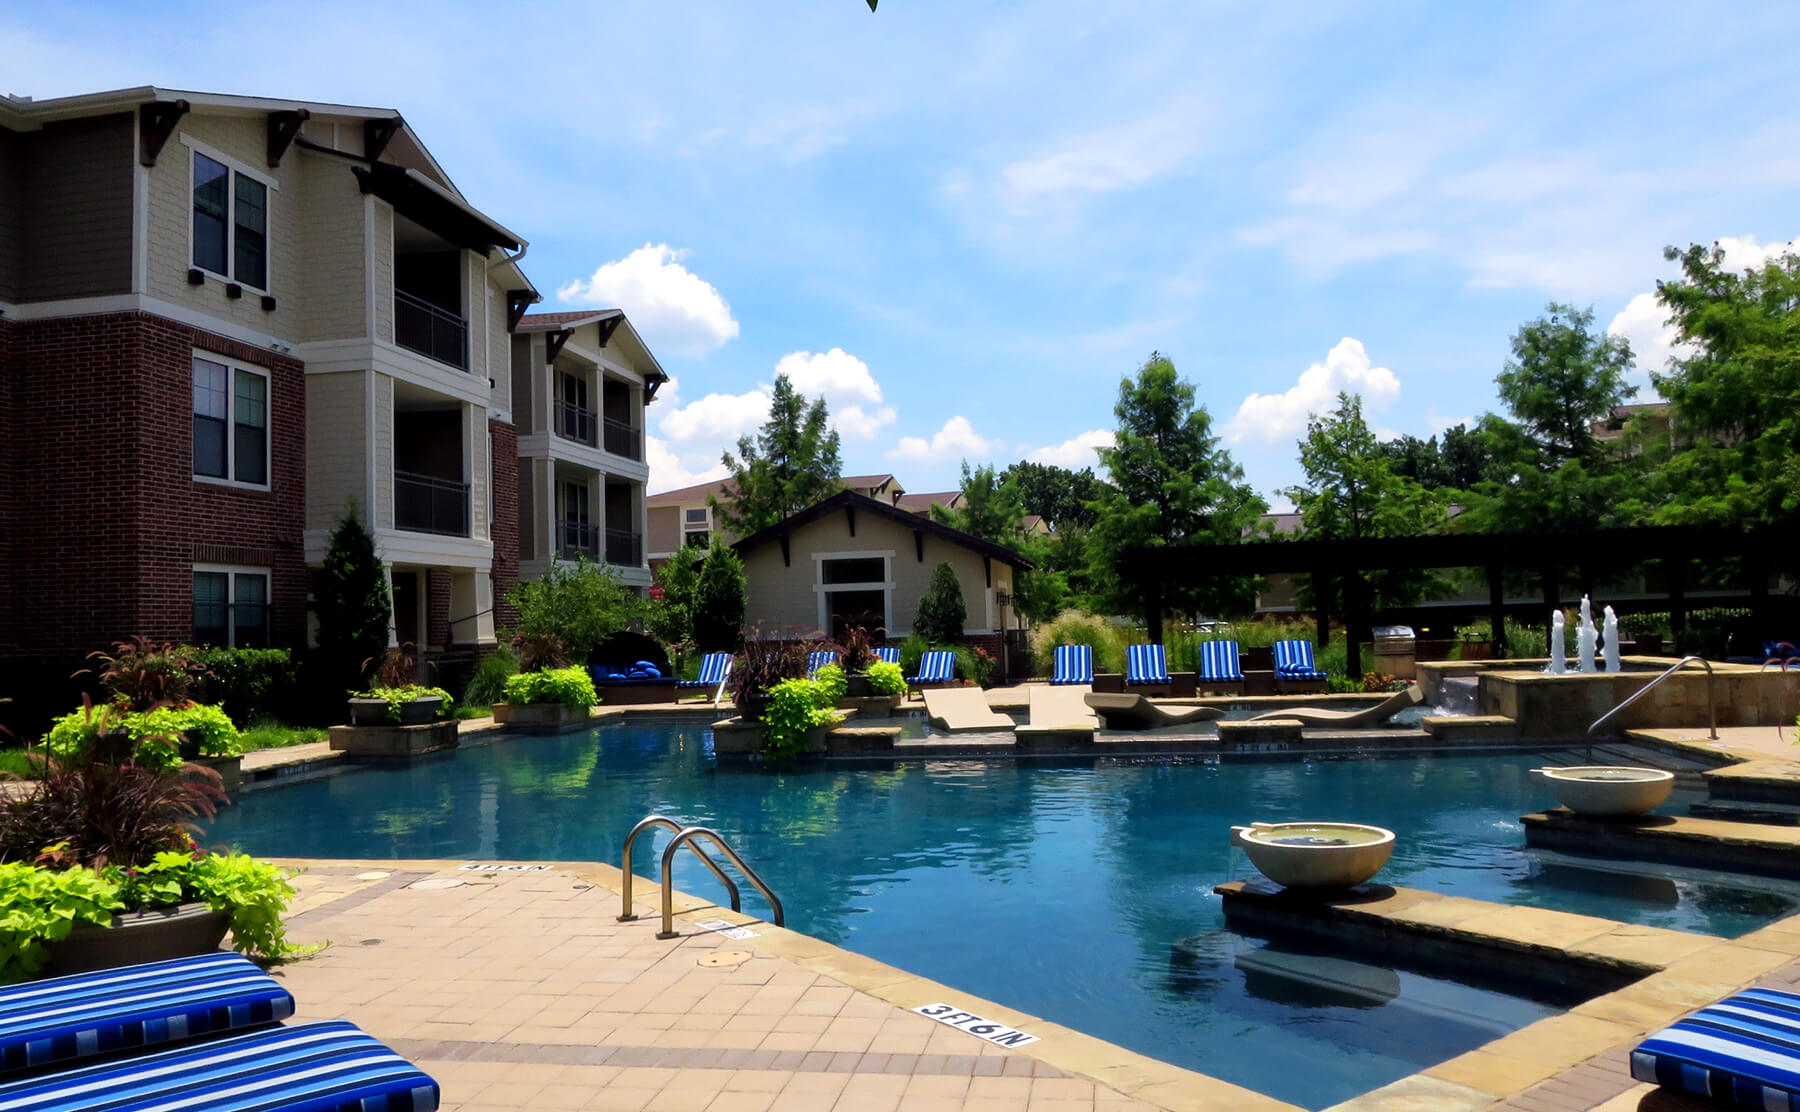 Lakewood Dallas Apartment Living - Poolside